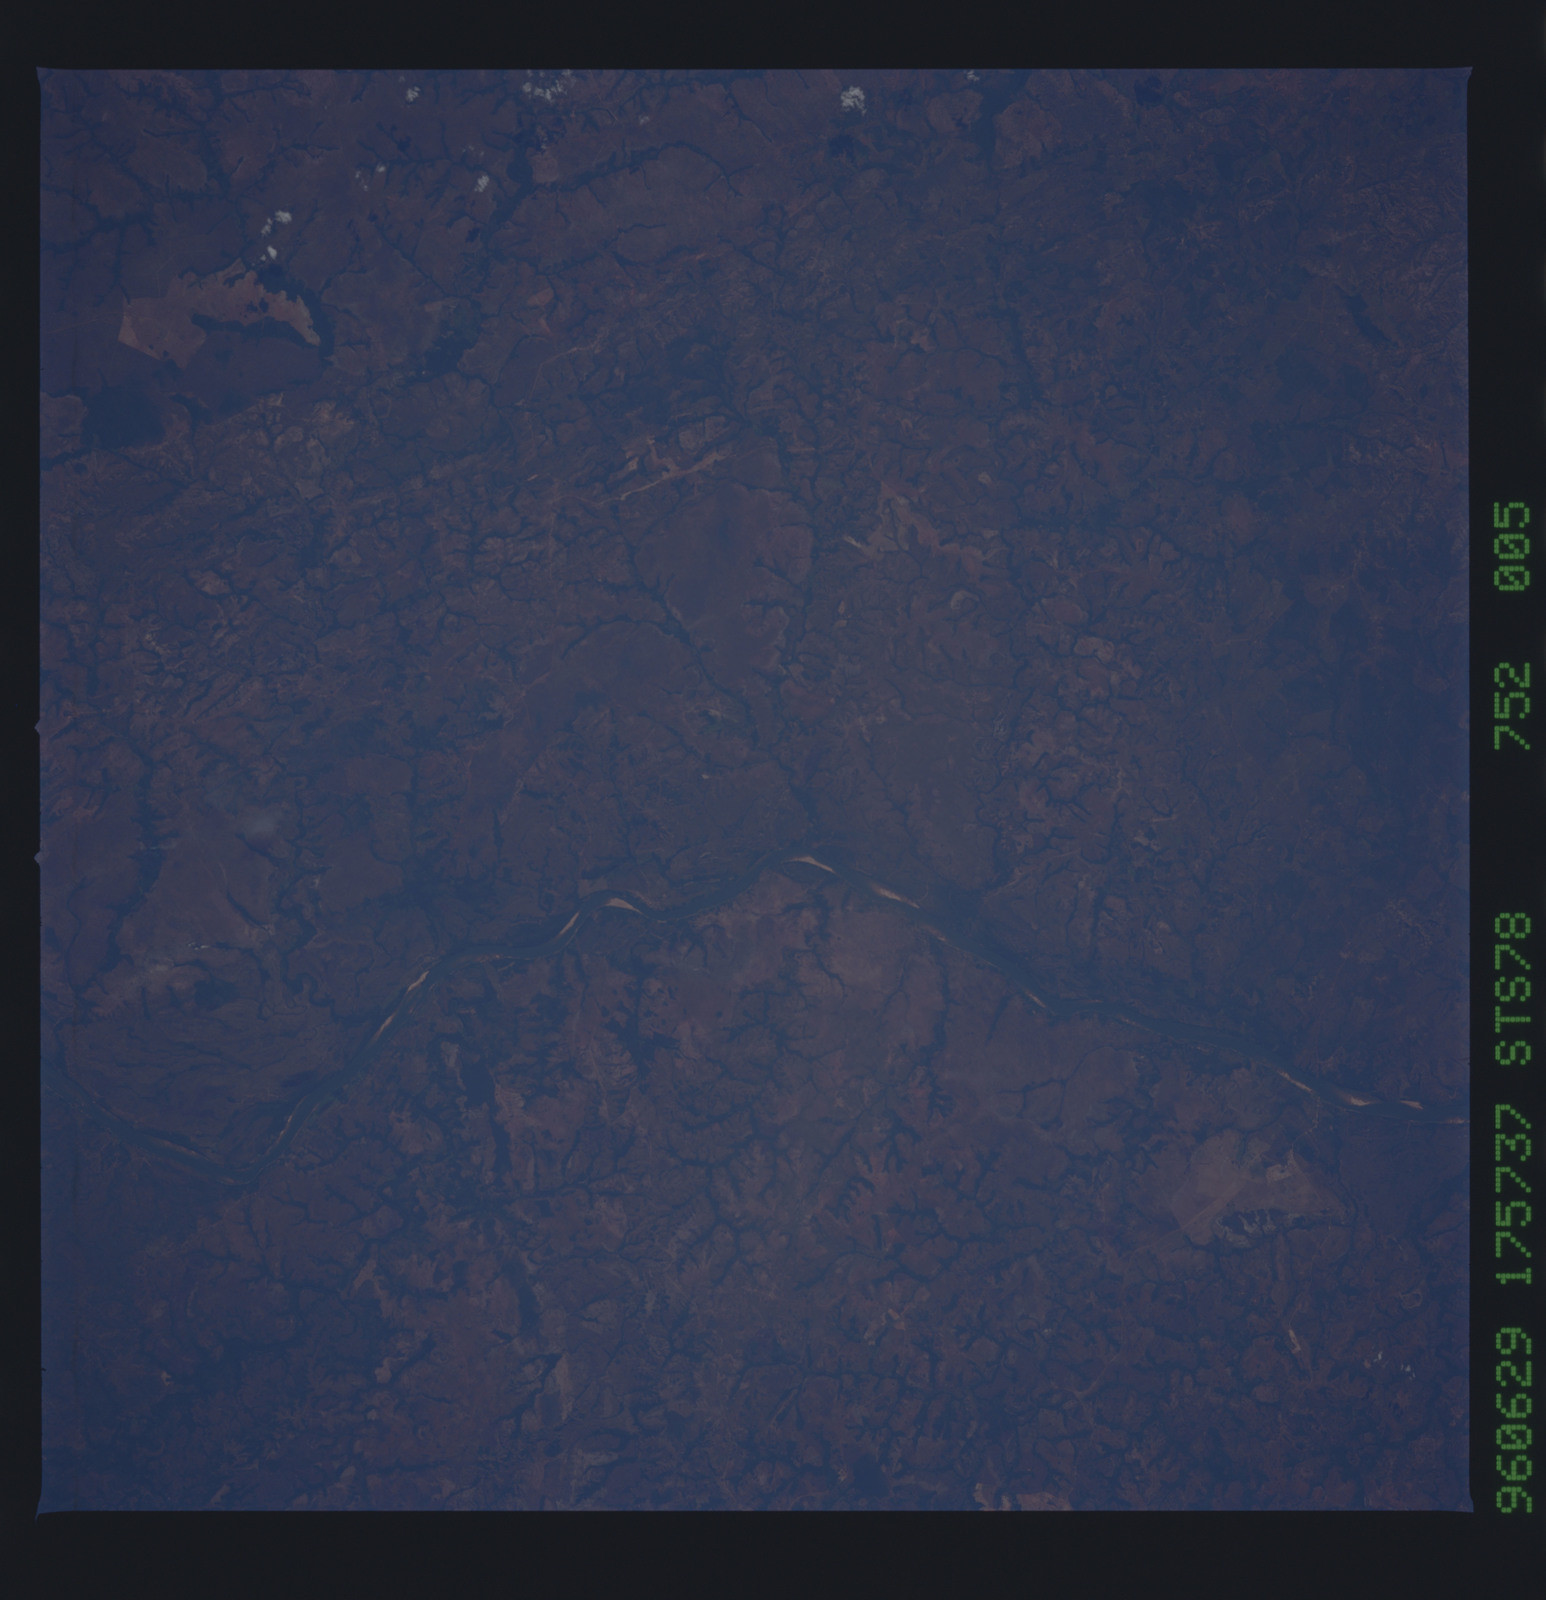 STS078-752-005 - STS-078 - Earth observations taken from Space Shuttle Columbia during STS-78 mission